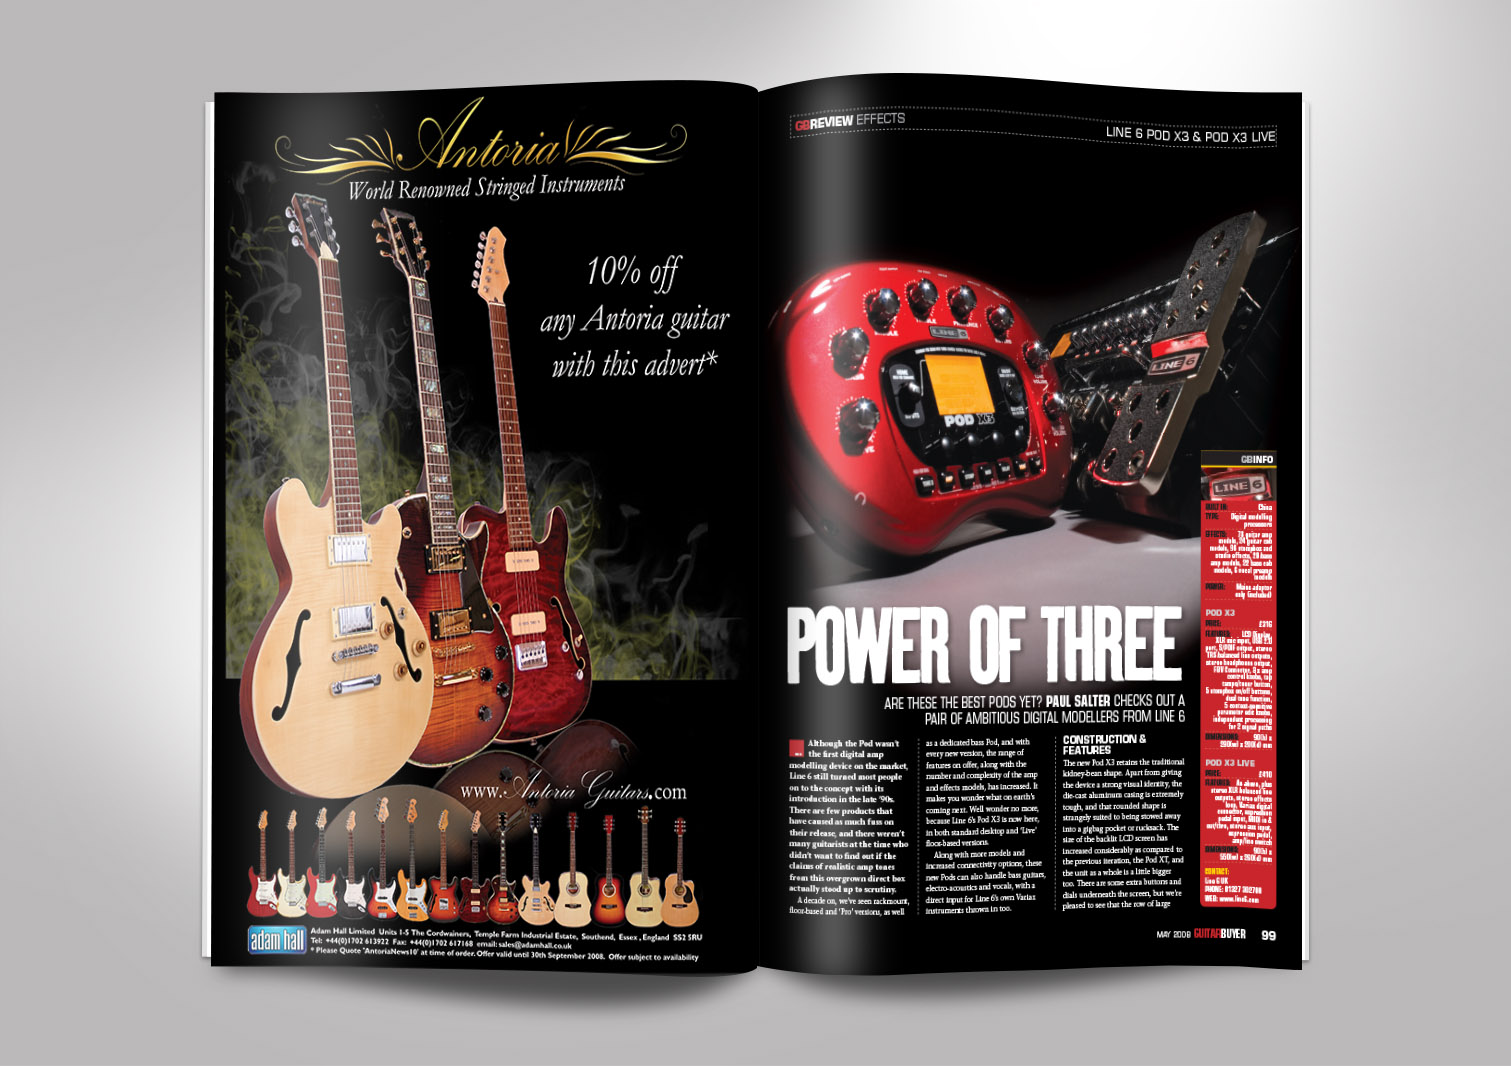 Guitar Buyer Magazine Inside Pages 1 and 2